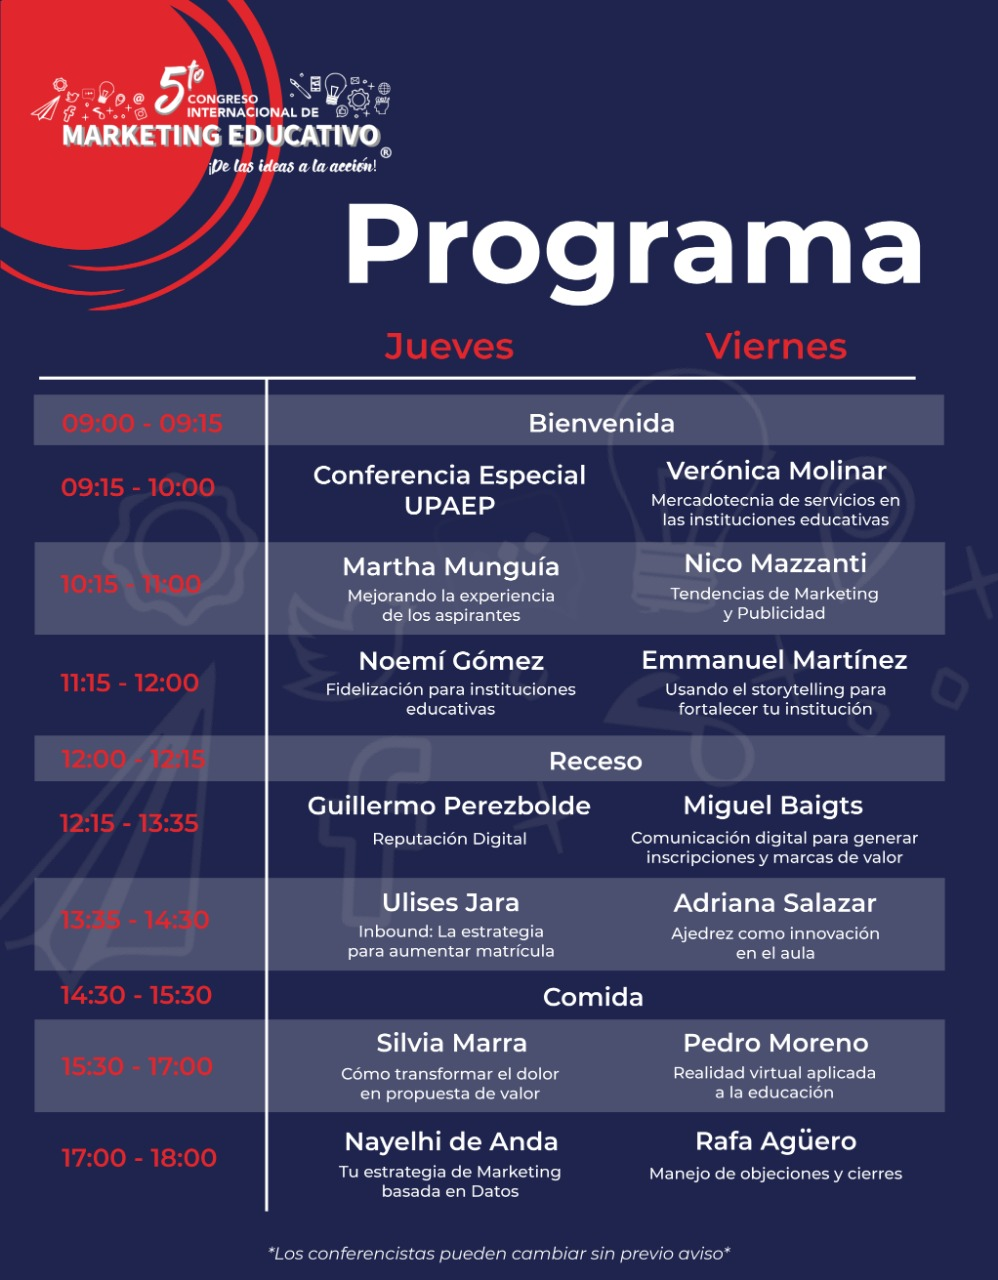 Programa 5to congreso de marketing educativo - Kpta